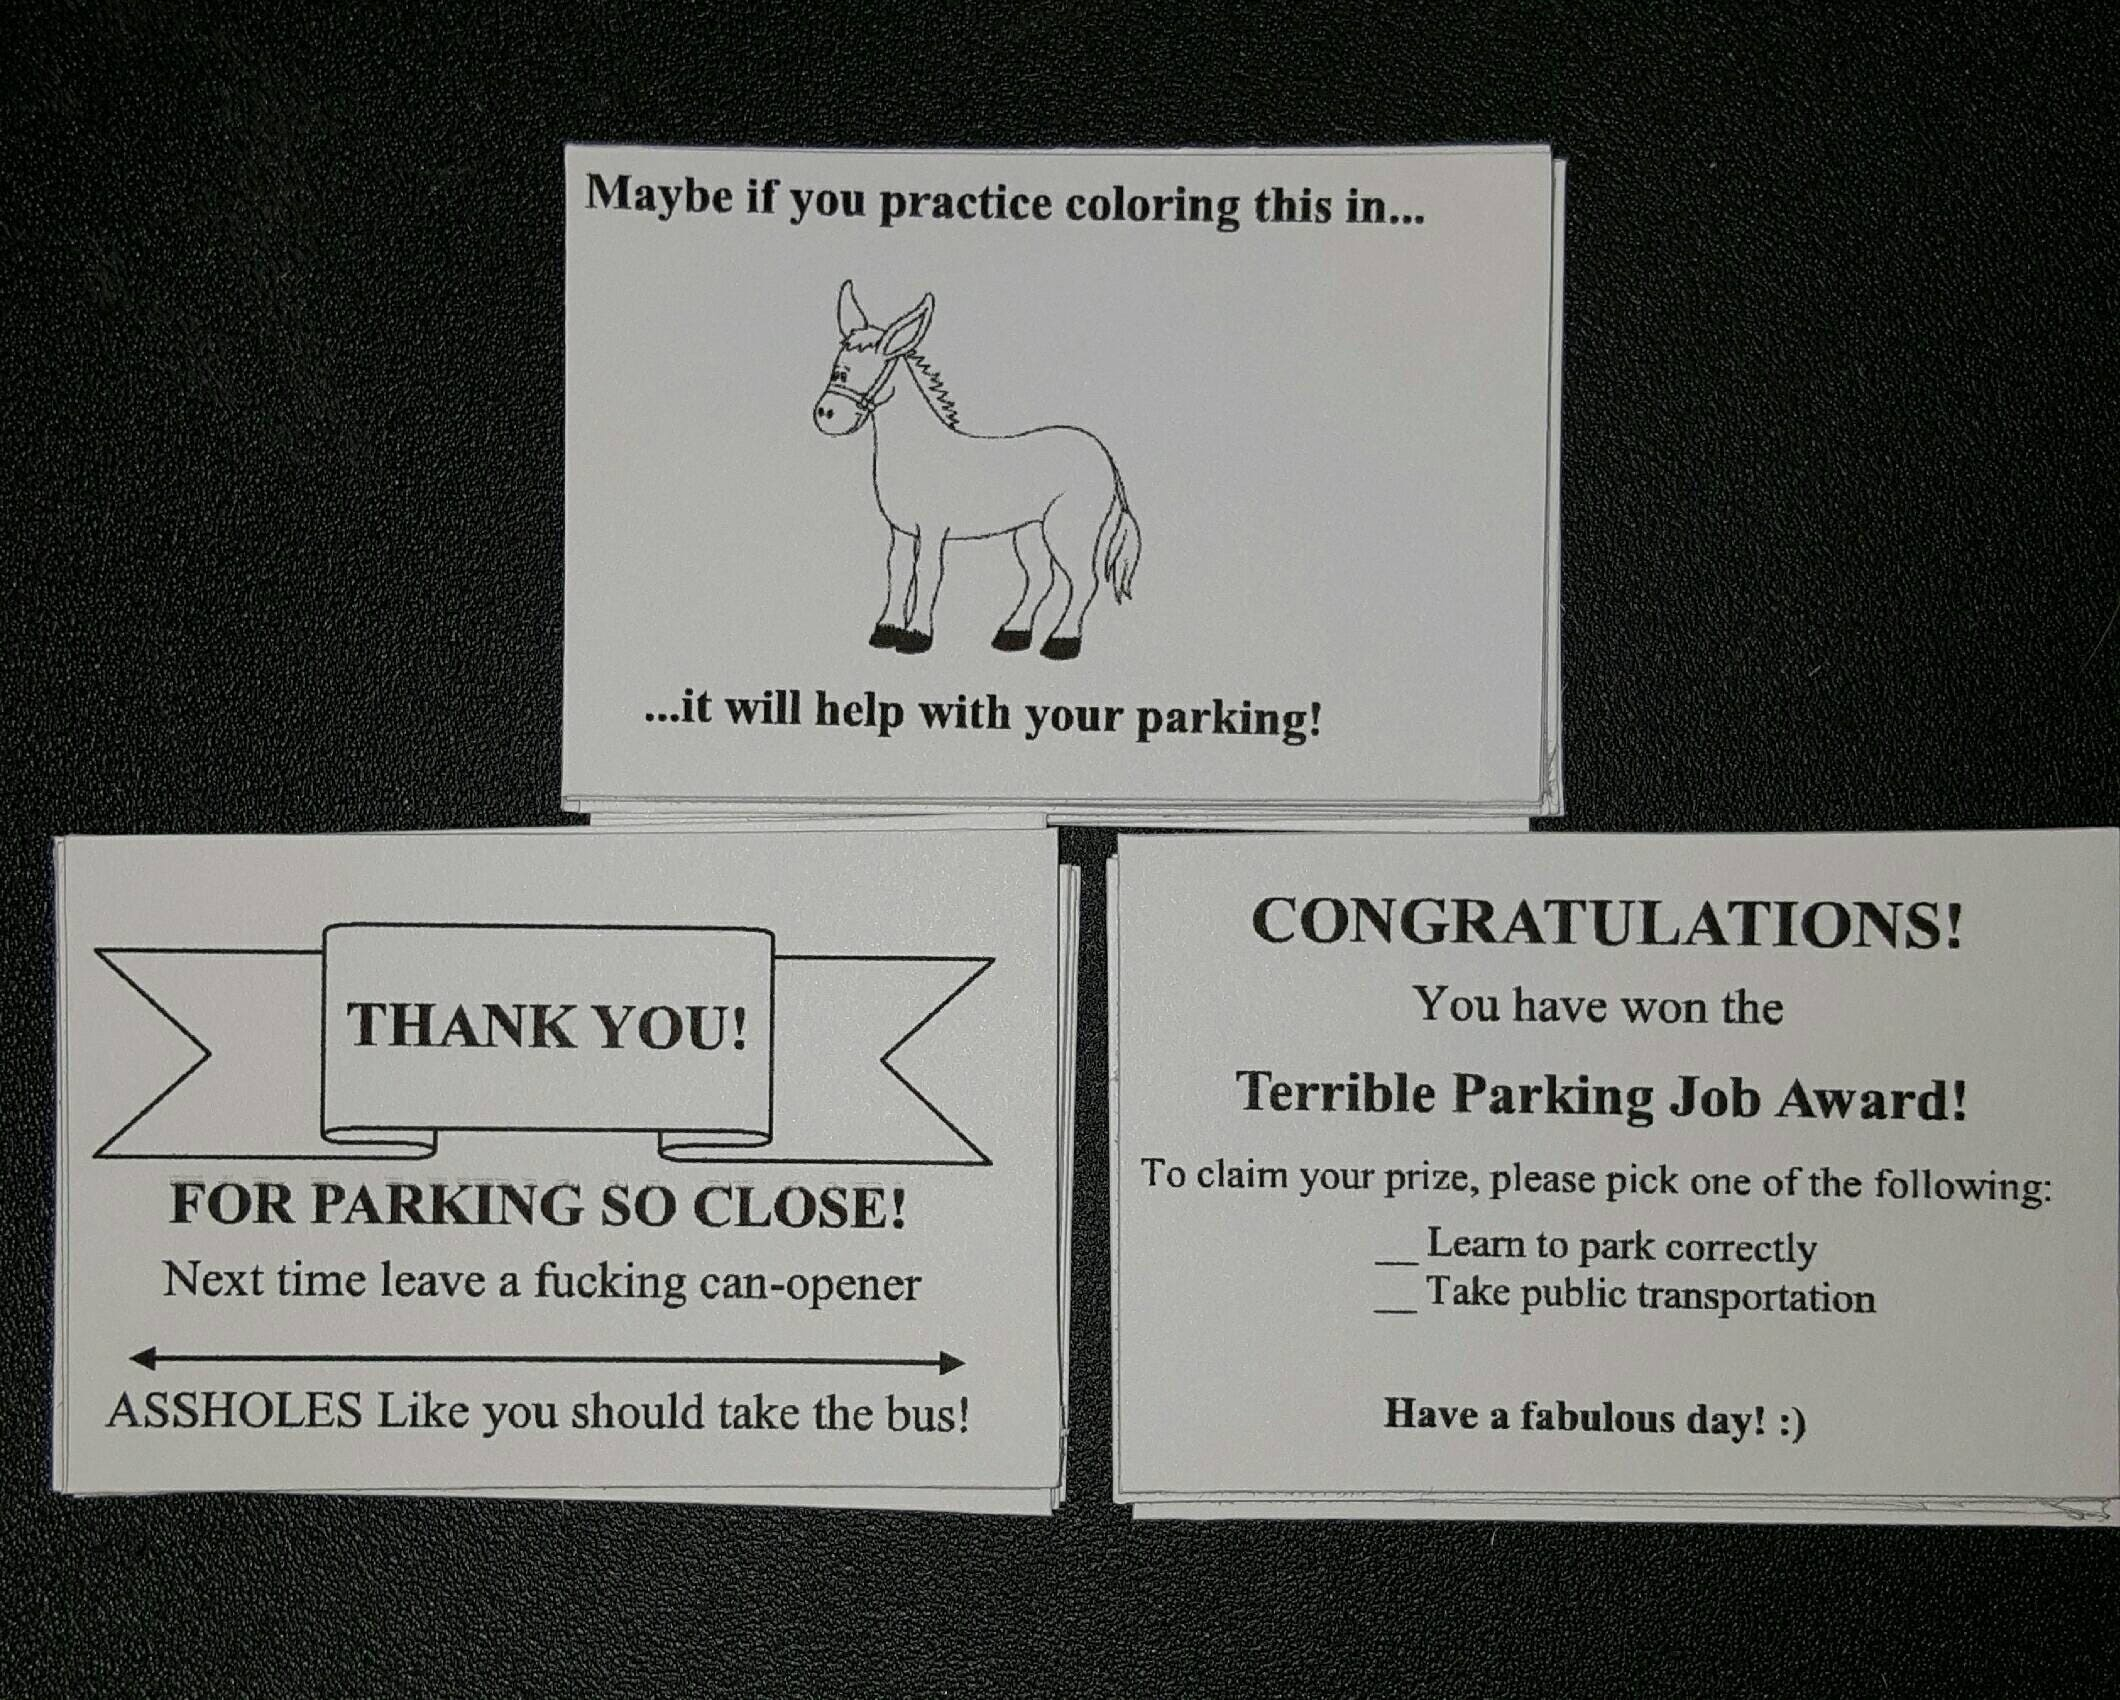 Bad parking business cards unlimitedgamers funny bad parking card gag gift business cards business colourmoves